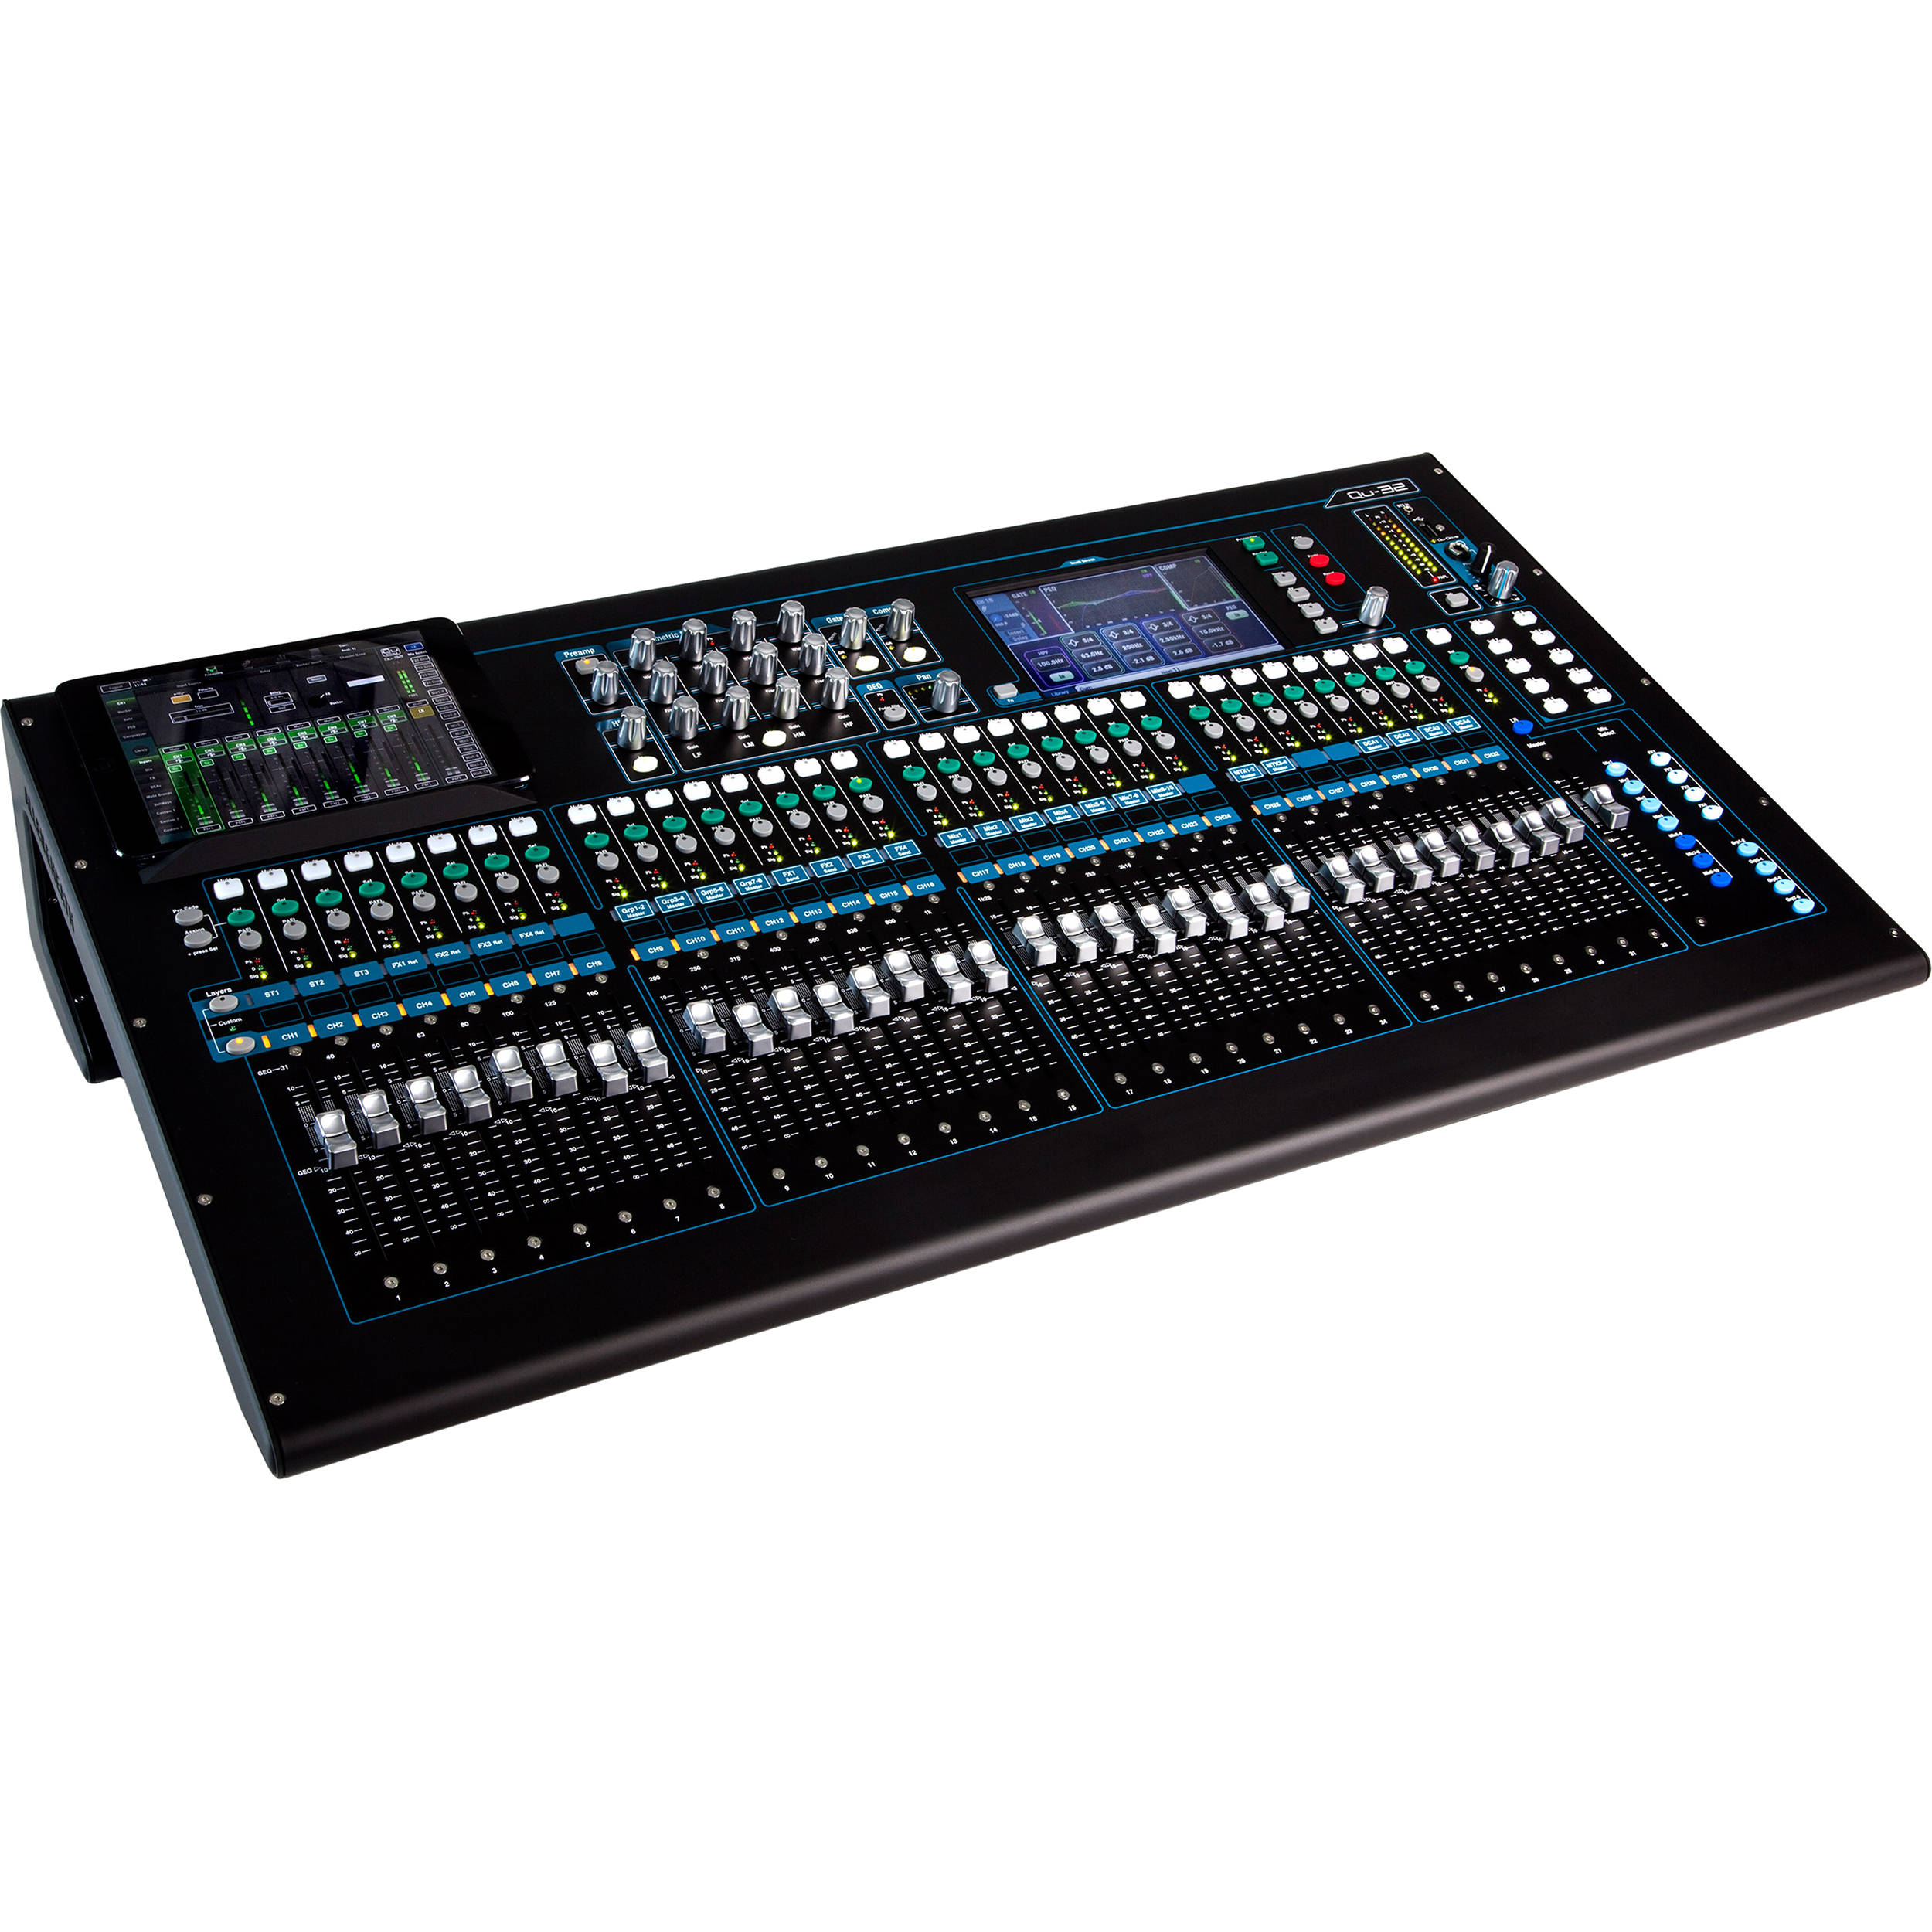 ALLEN&HEATH QU-32 DIGITAL MIXER WINDOWS 8 DRIVERS DOWNLOAD (2019)